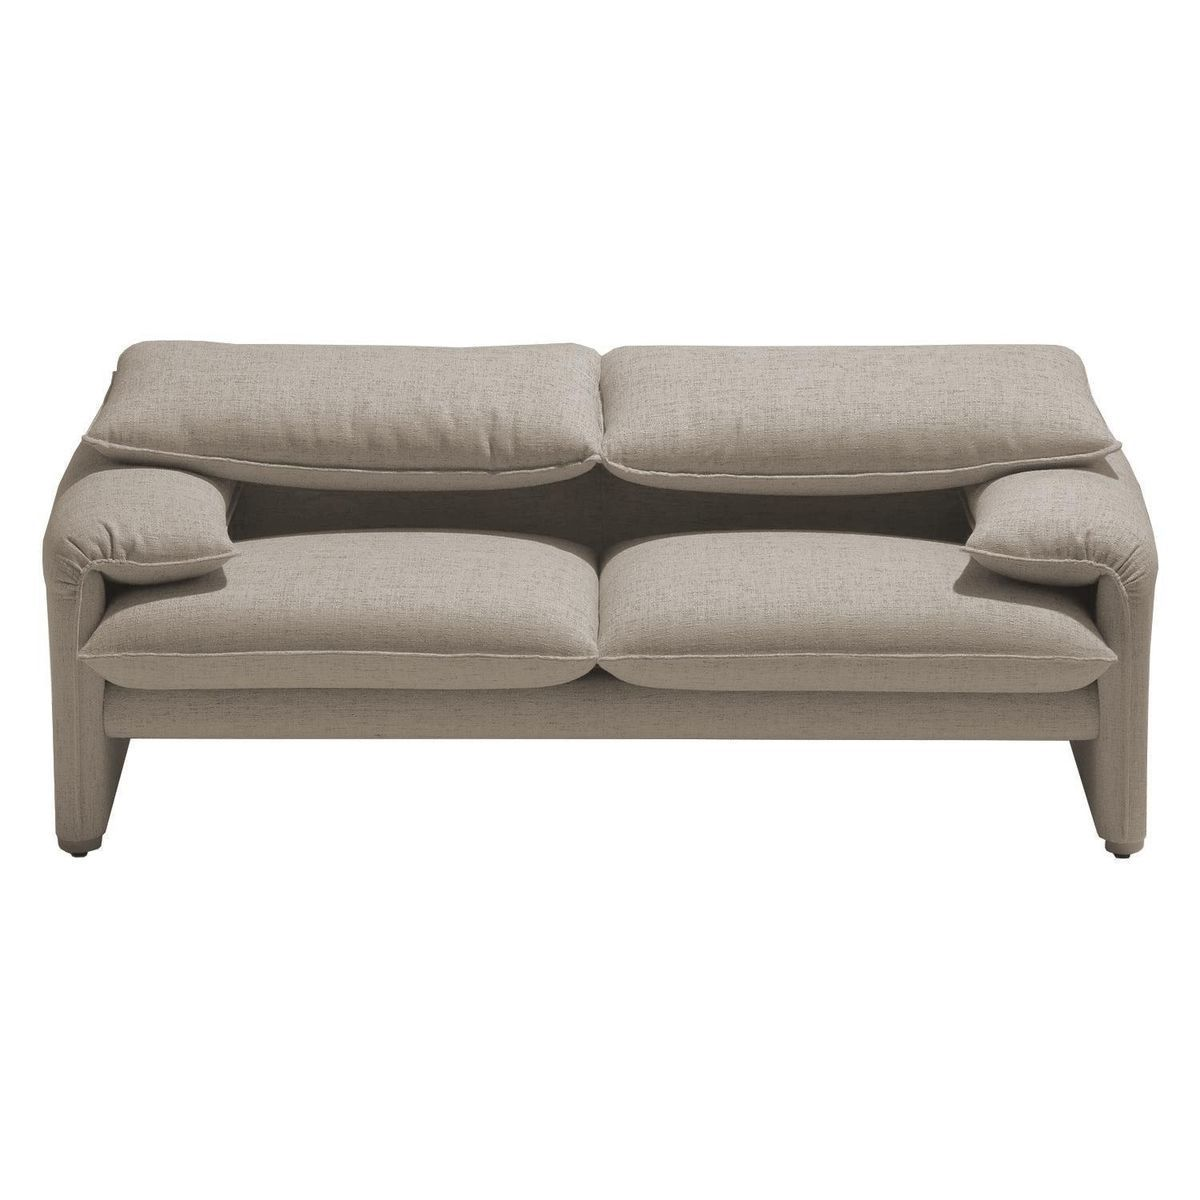 Ambiente Direct cassina sofa covers home the honoroak